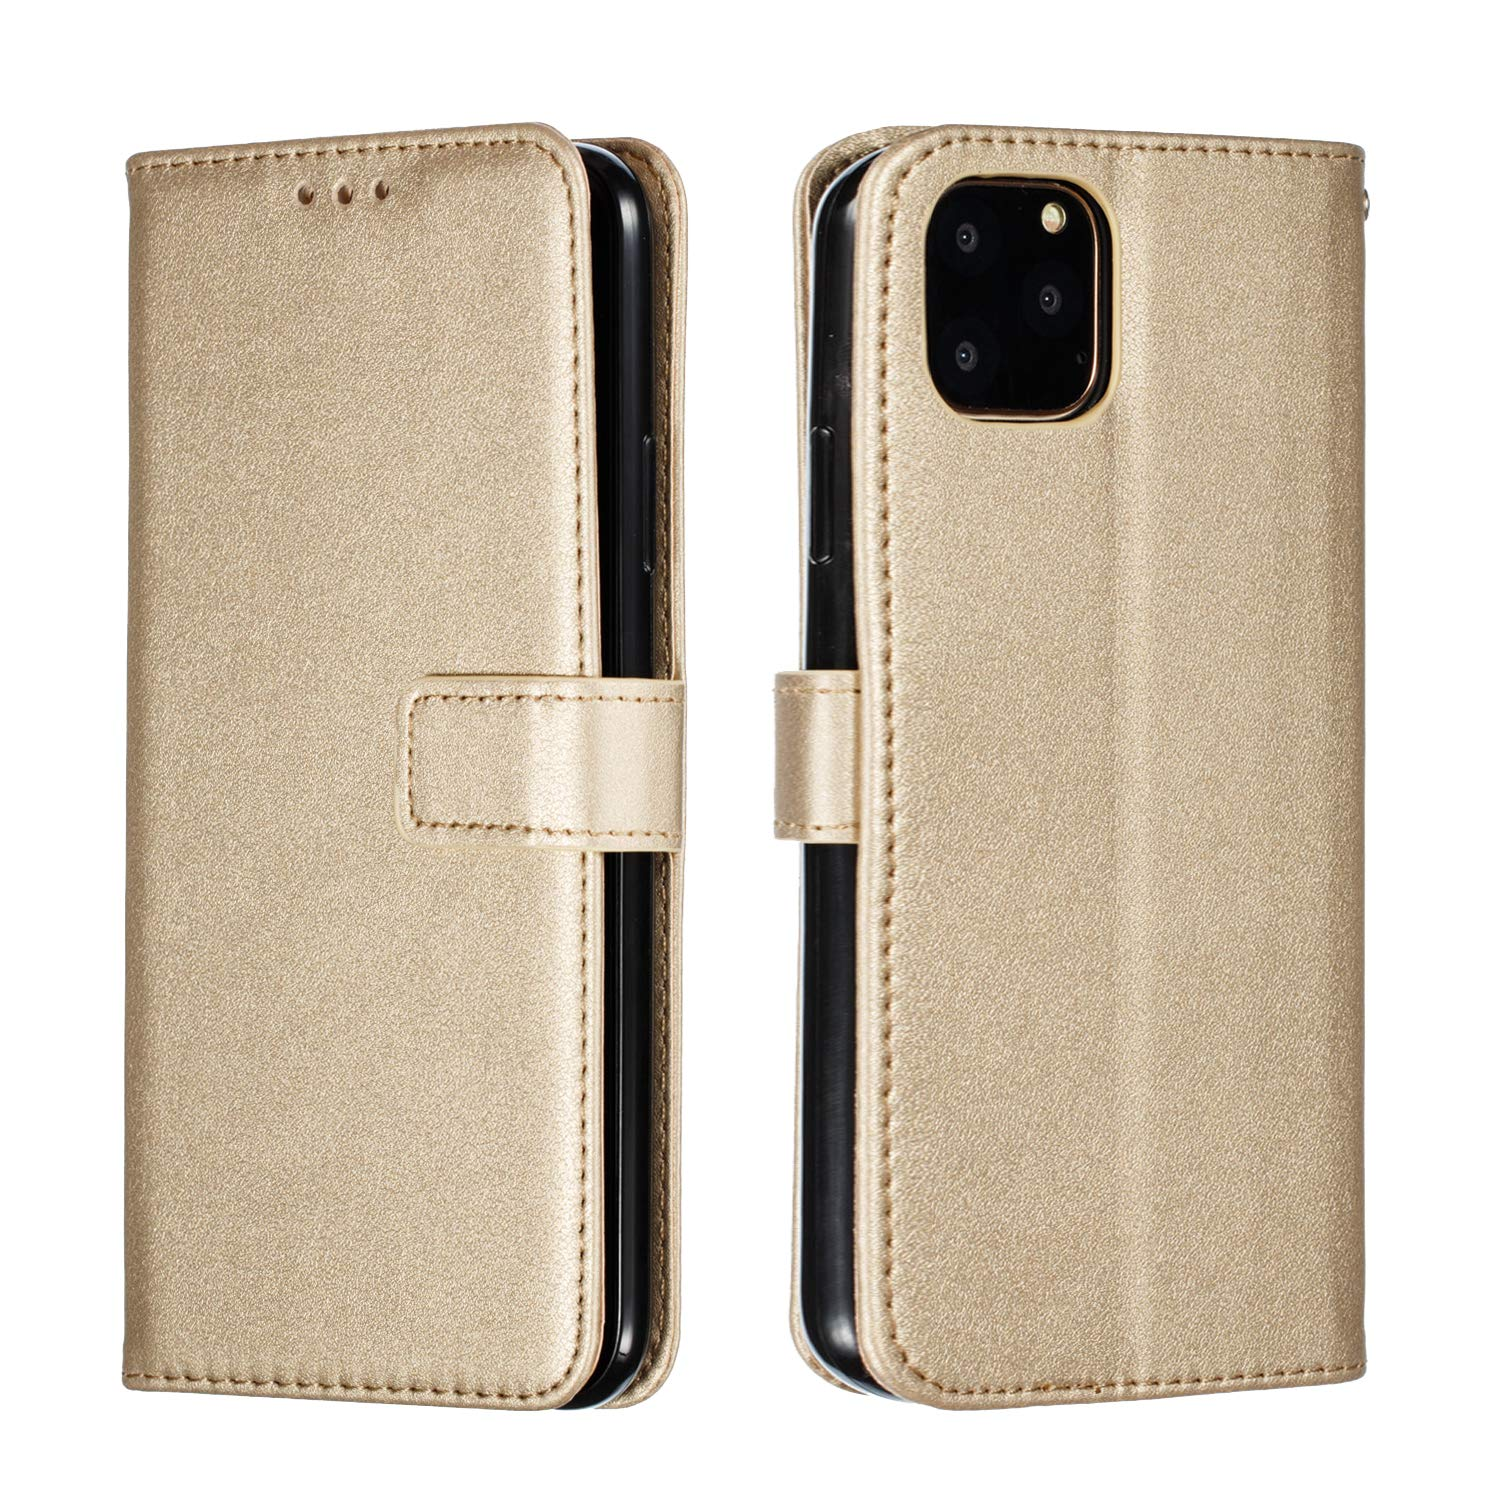 BeyeX Samsung Galaxy A10s Flip Case Leather Cover Extra-Durable Business Card Holders Kickstand Mobile Phone Cover Simple 3 Card Slot Money interlayer Sling (Gold)